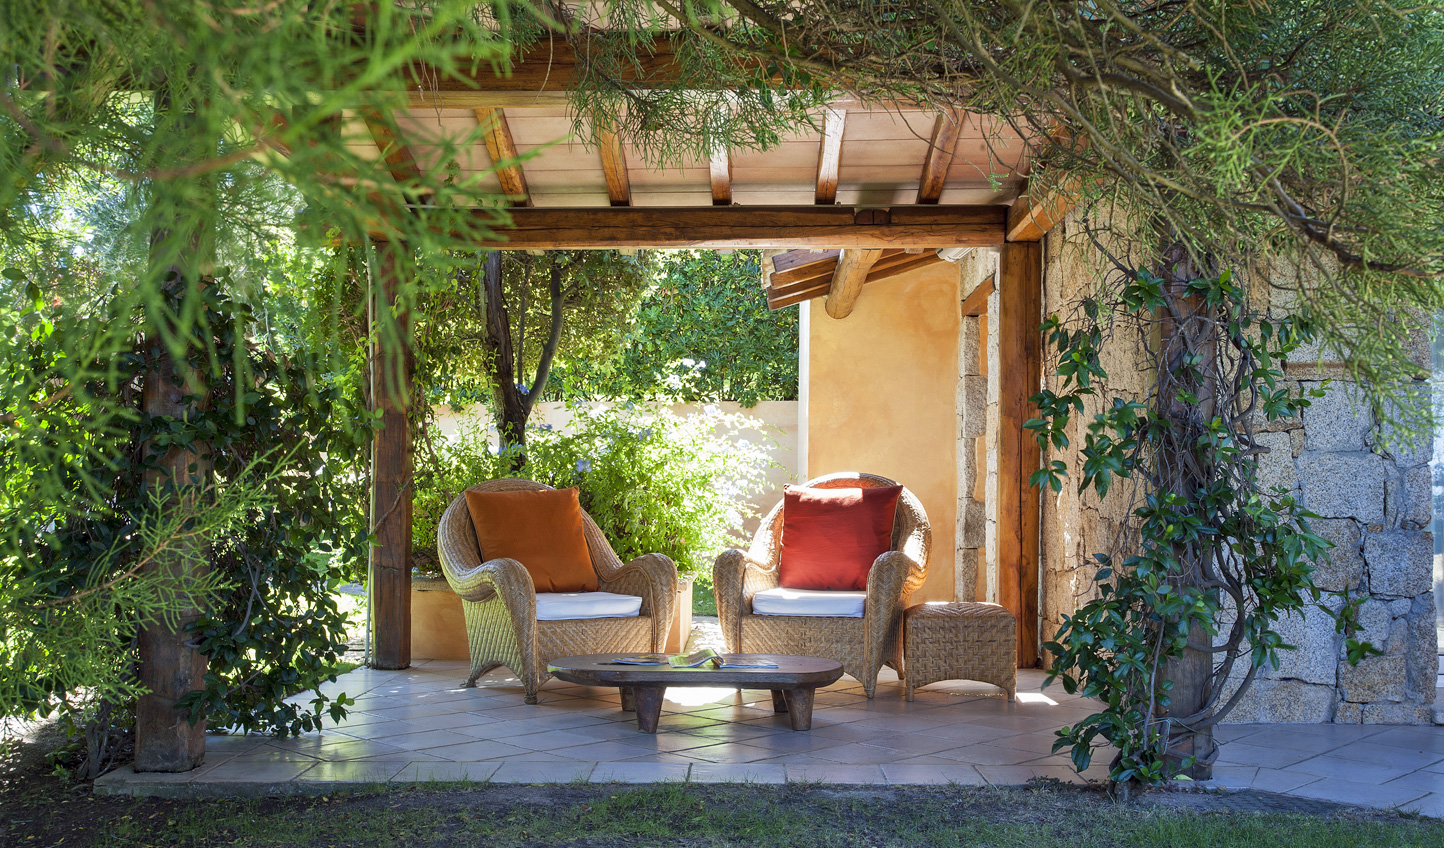 Relax in the shade of the bouganvillea